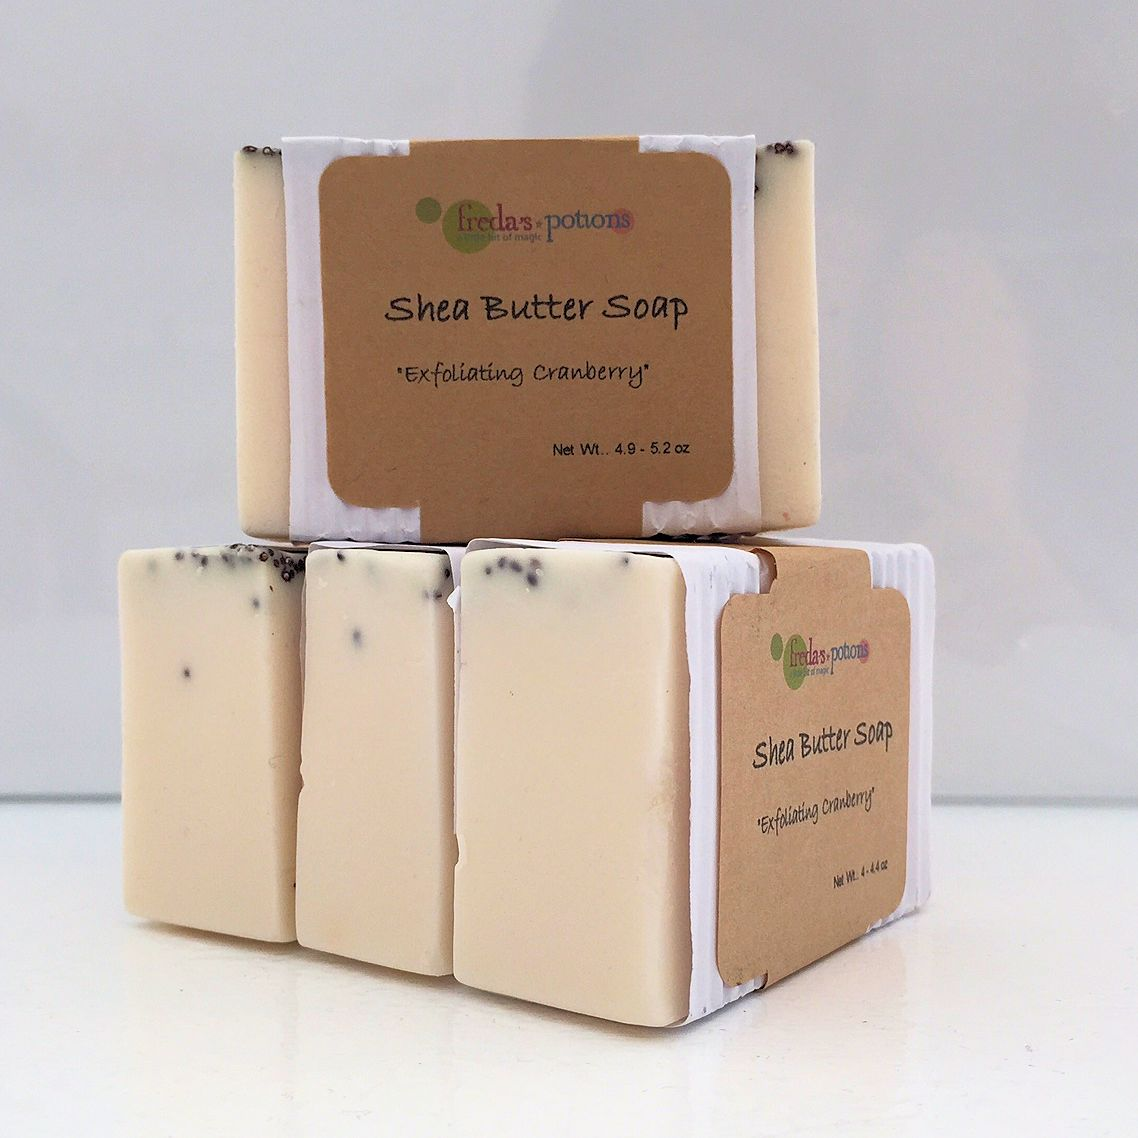 Exfoliating Cranberry Shea Butter Soap